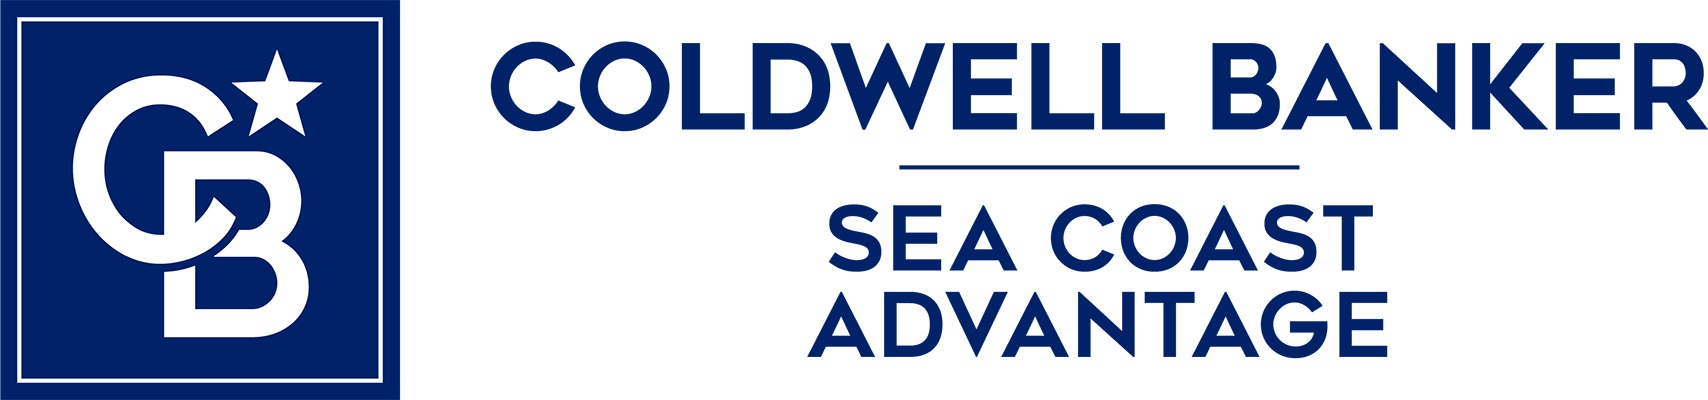 James Diaz - Coldwell Banker Sea Coast Advantage Realty Logo